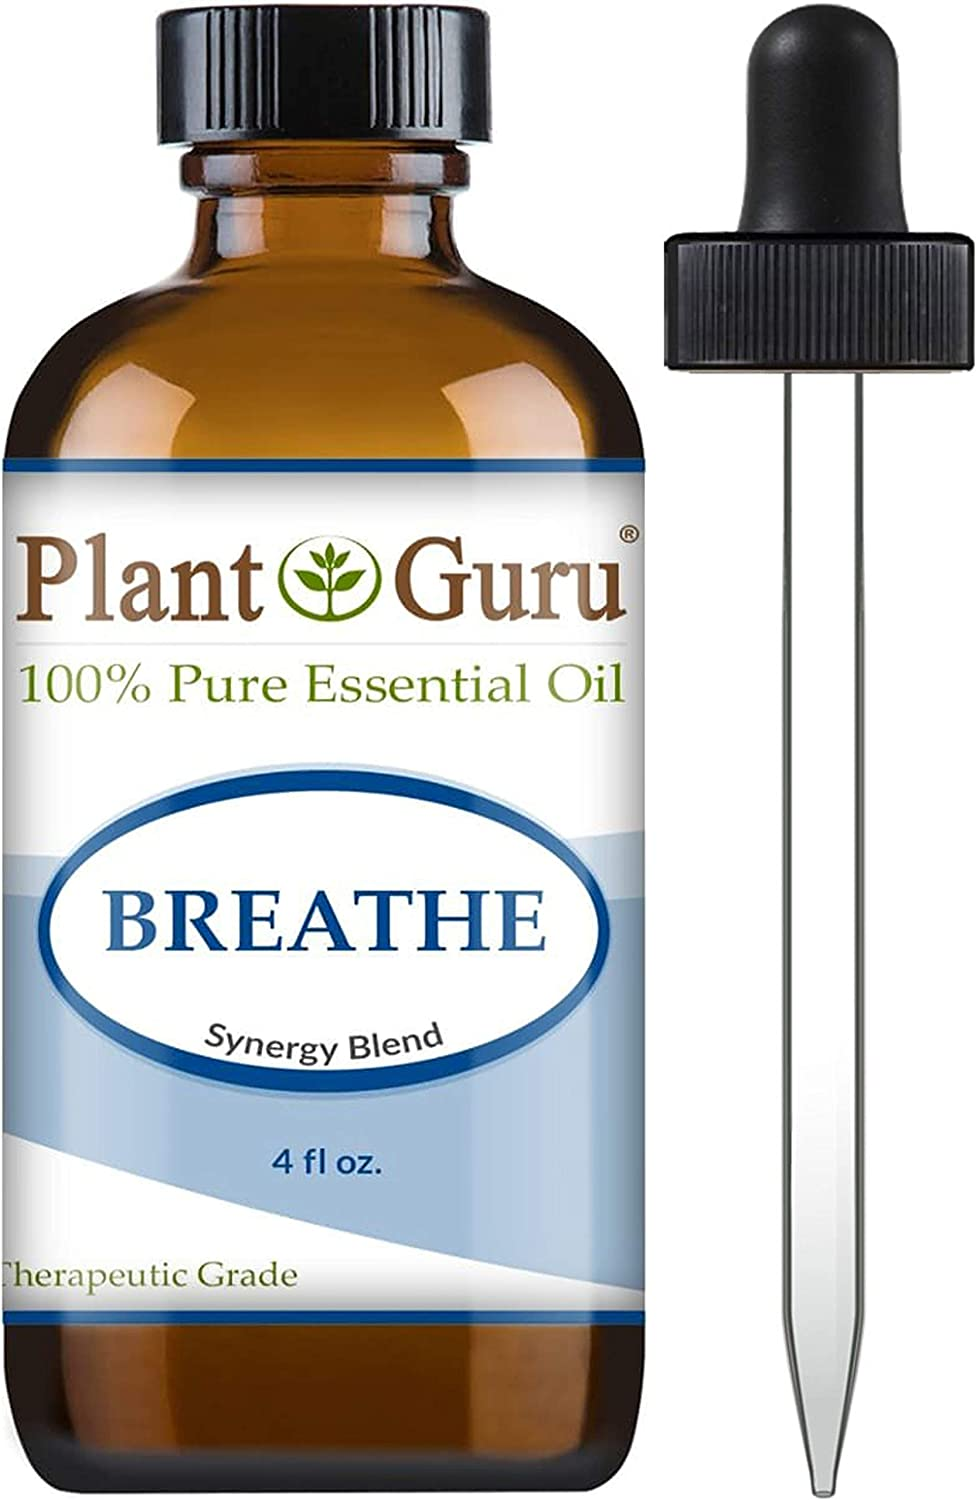 Breathe Essential Oil Blend 4 oz Respiratory 100% Pure Therapeutic Grade for Sinus, Allergy, Breathing Issues, Chest Congestion, Cough, Cold and Flu, Aromatherapy Humidifier Diffuser.